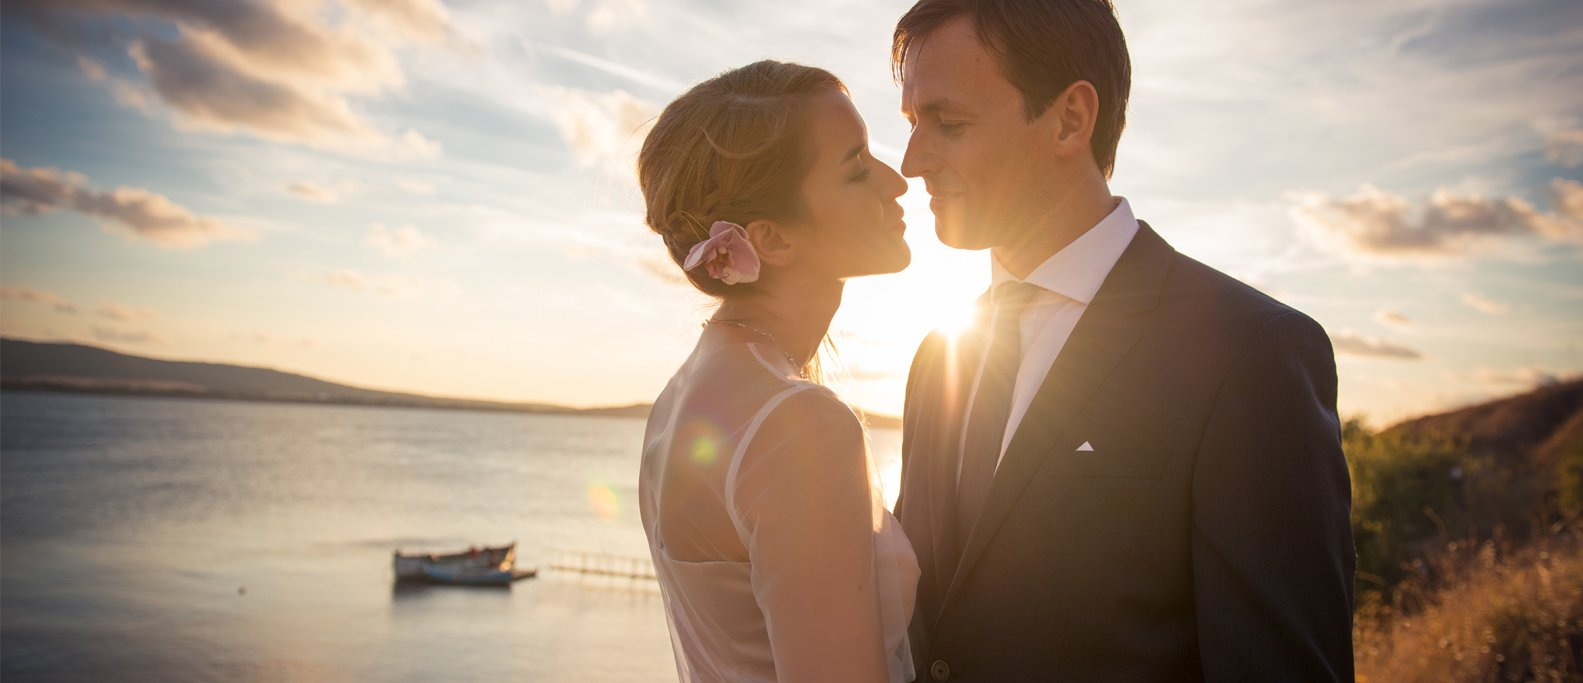 Romantic Wedding Photosession by the Sea